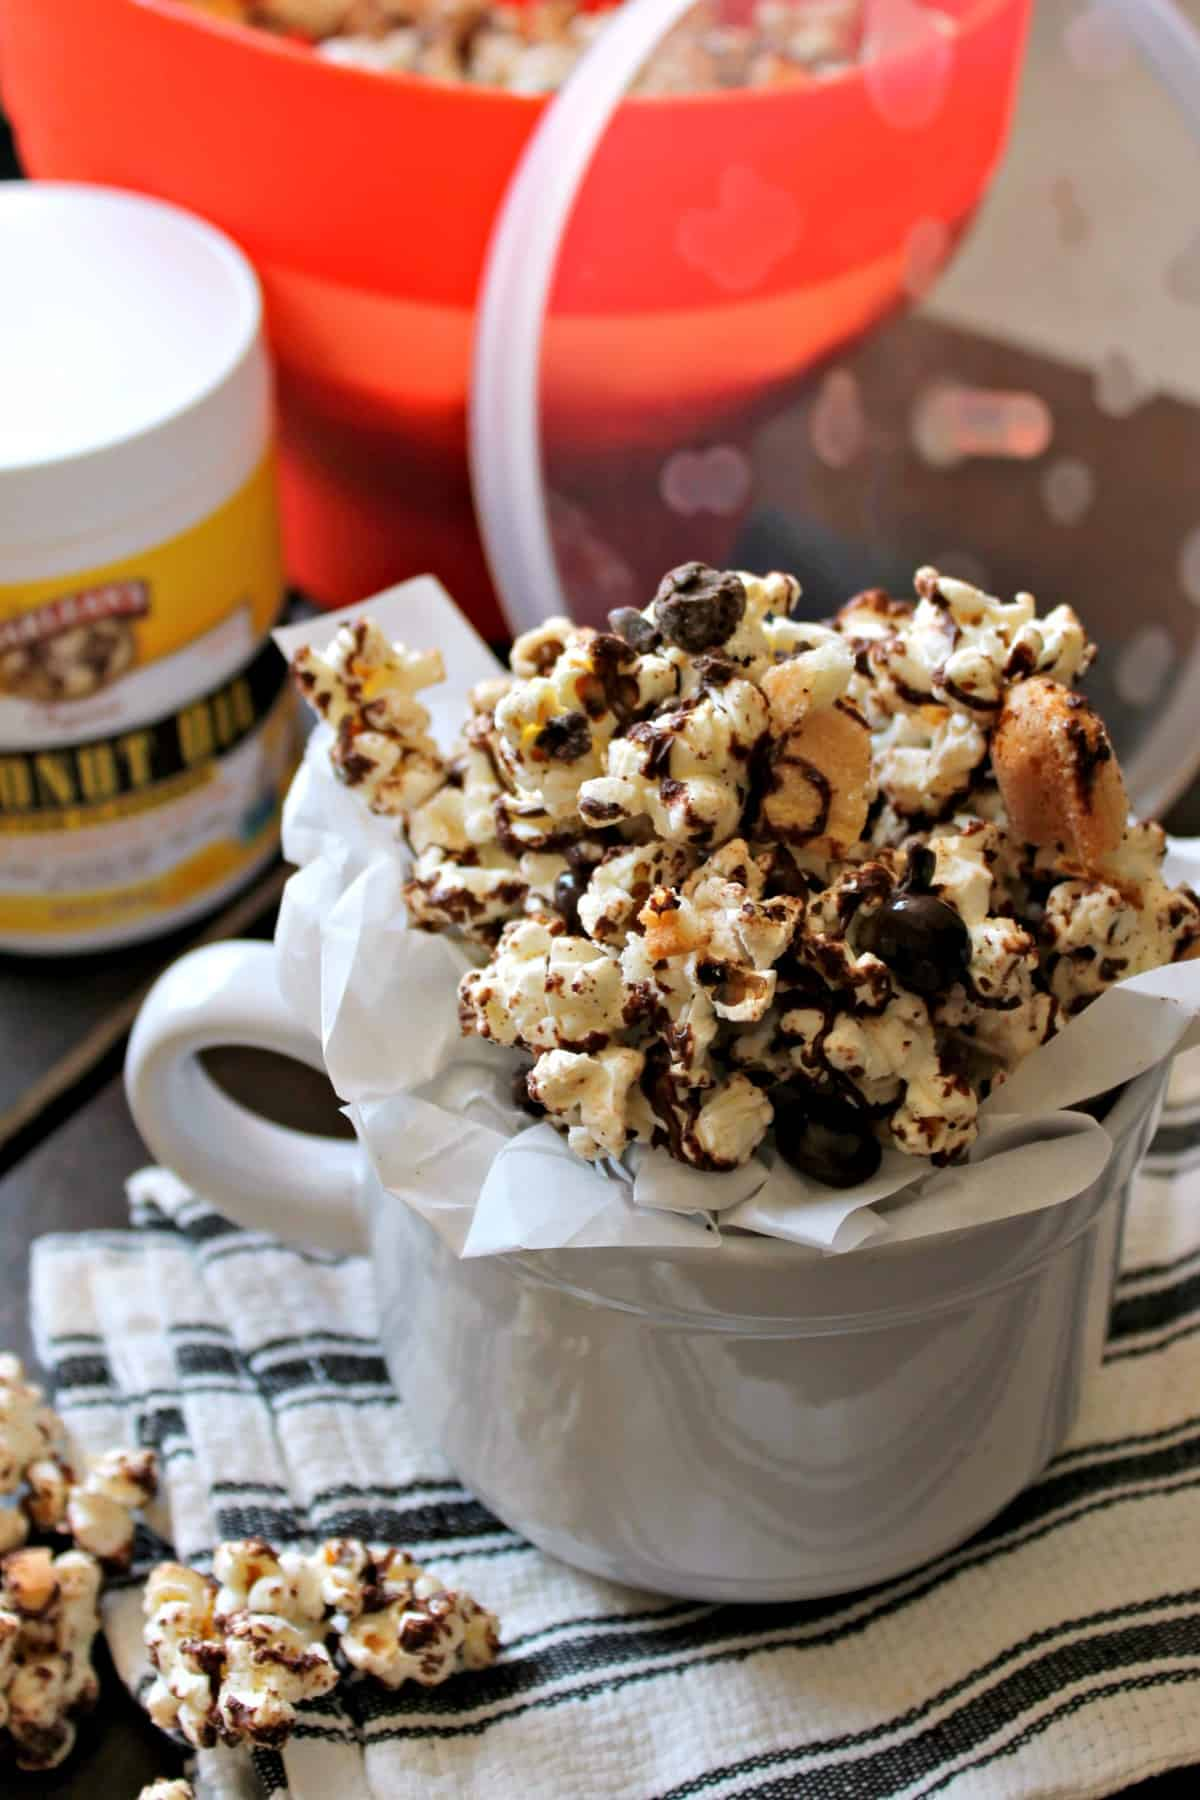 Chocolate drizzled popcorn with toffee and lady finger cookie pieces